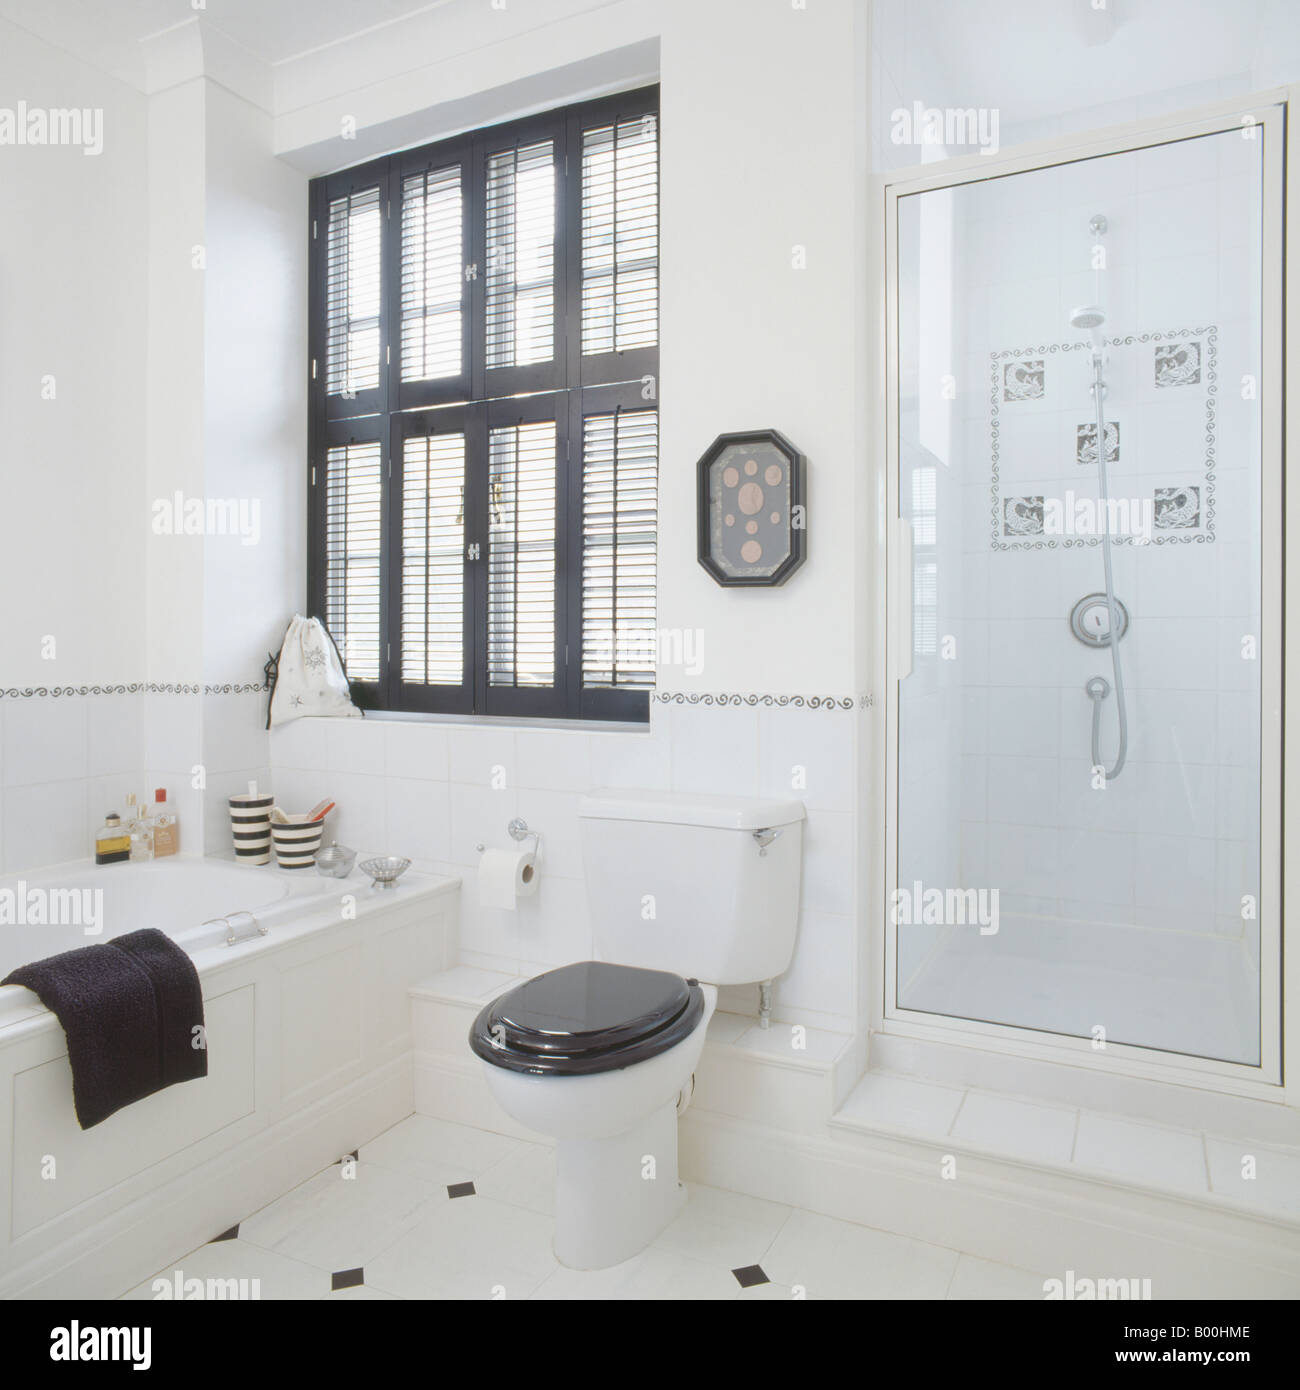 White Toilet With Black Seat. Black plantation shutters above bath and black toilet seat in modern white  bathroom with glass shower door